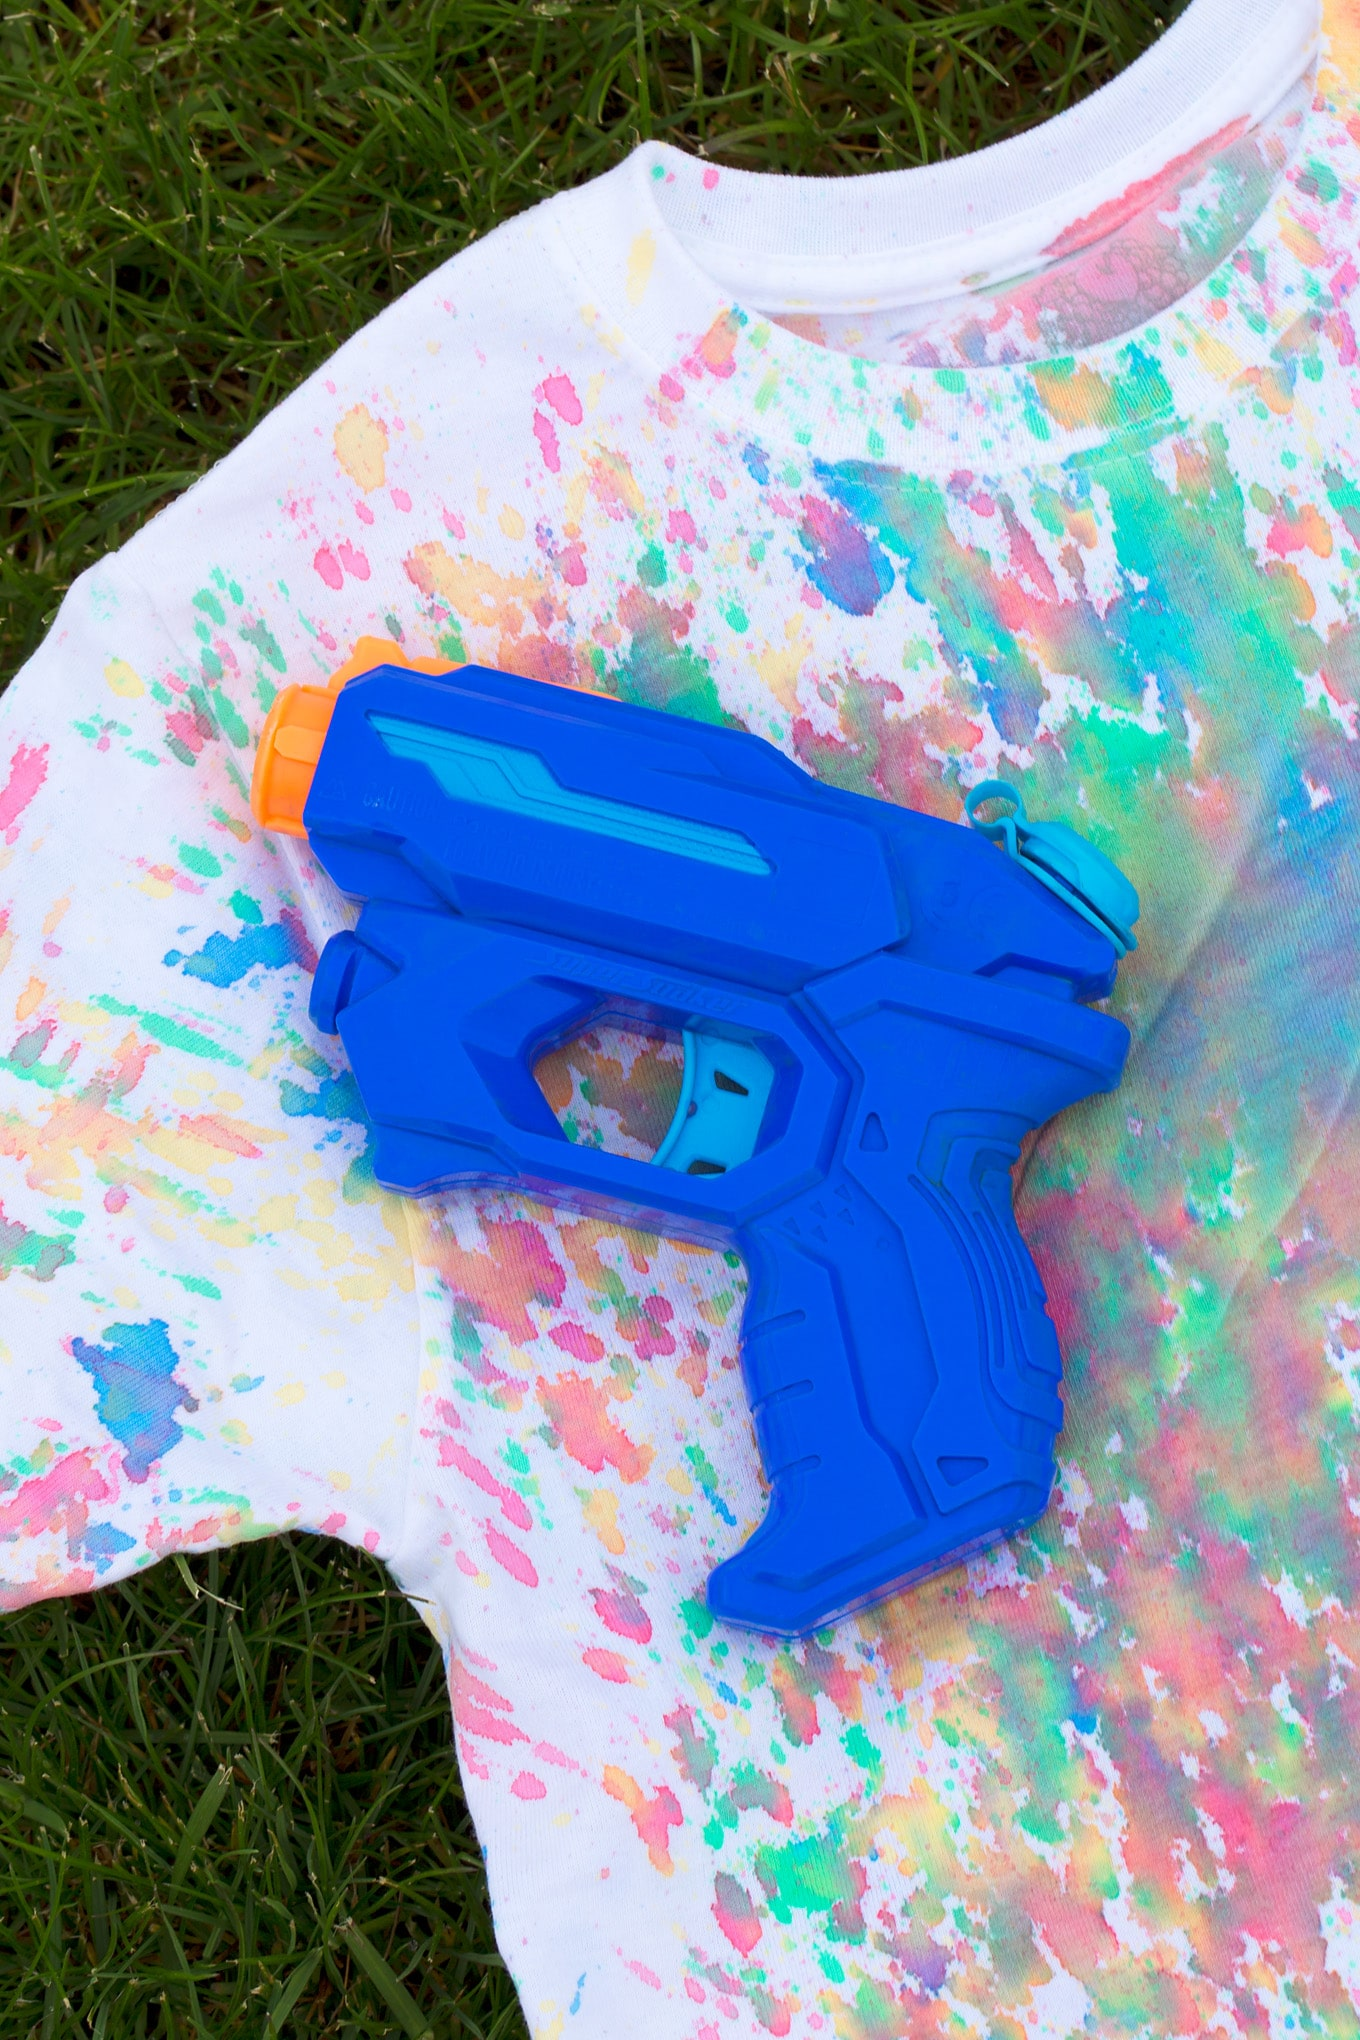 Squirt Gun Tie-Dye! Kids of all ages will enjoy using squirt guns to create vibrant, tie-dyed shirts! It's perfect for summer.